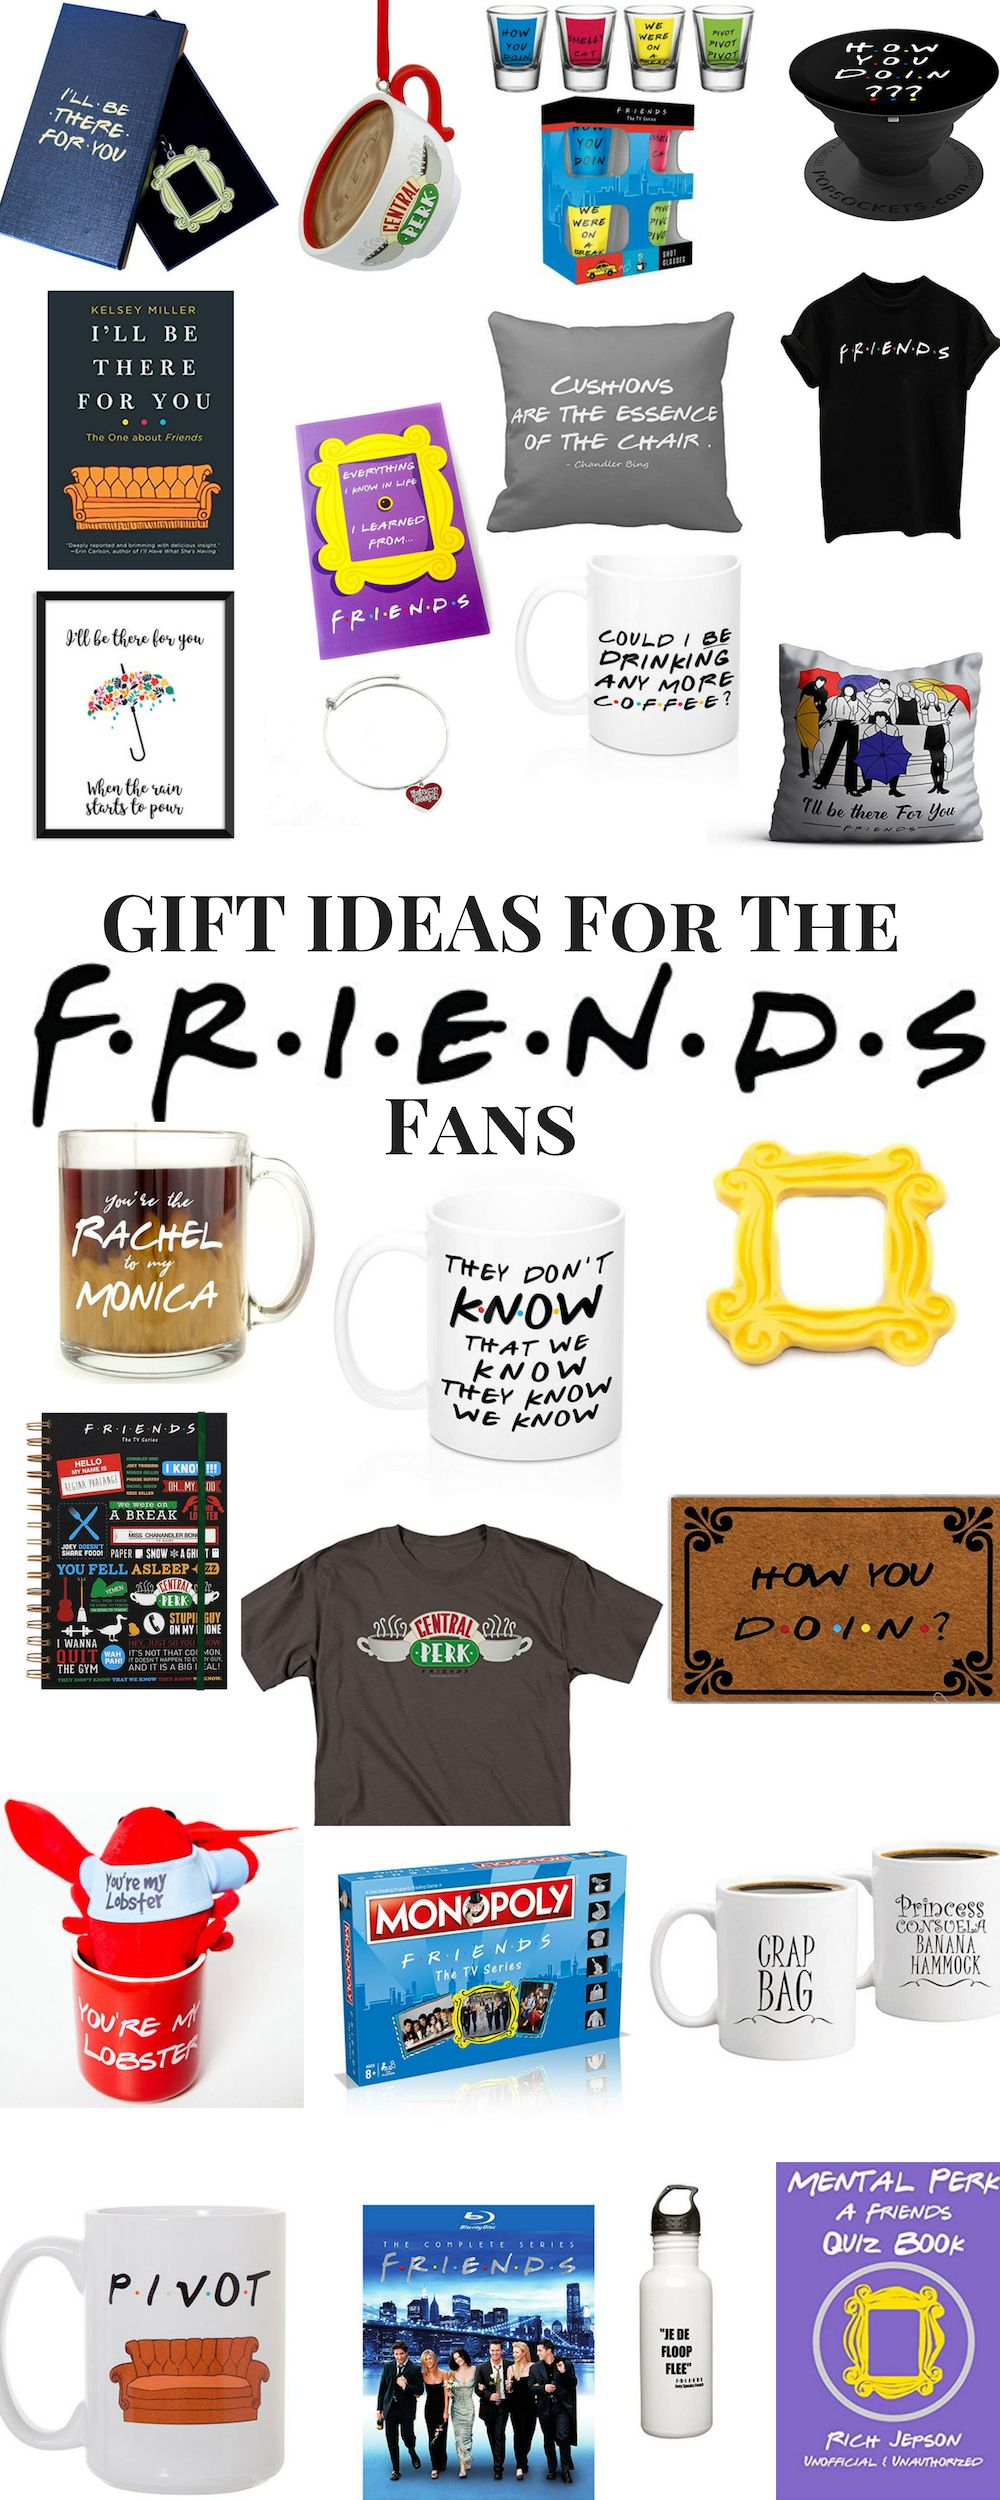 The Ultimate Girlie Girl S Gift Guide Ourkindofcrazy Com Friends Tv Show Gifts Thoughtful Gifts For Him Diy Gifts For Him